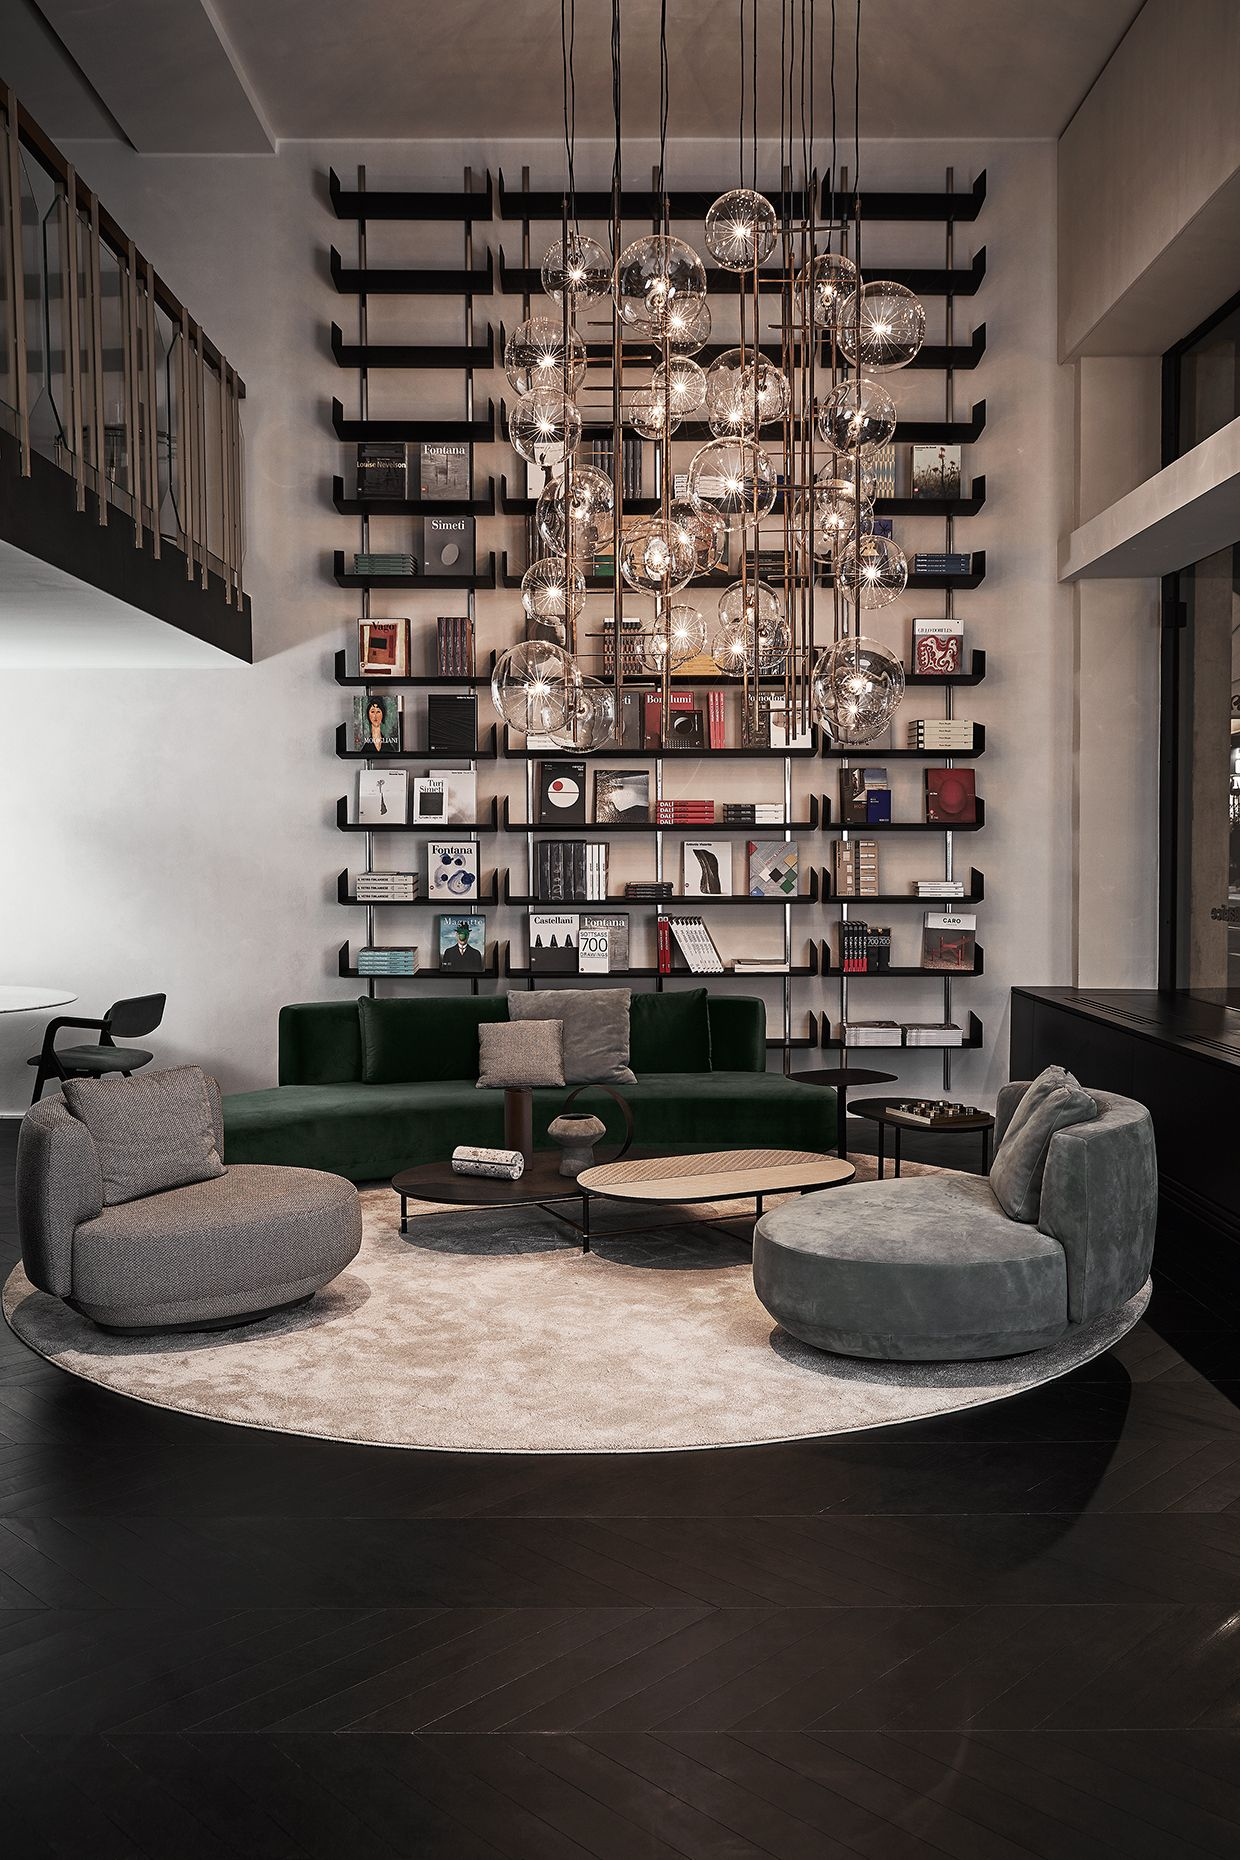 Sophisticated And Elegant Our Living Room Becomes A Place To Celebrate Intimate Hangouts And Laid Back Conversati Home Decor Accessories Living Spaces Home